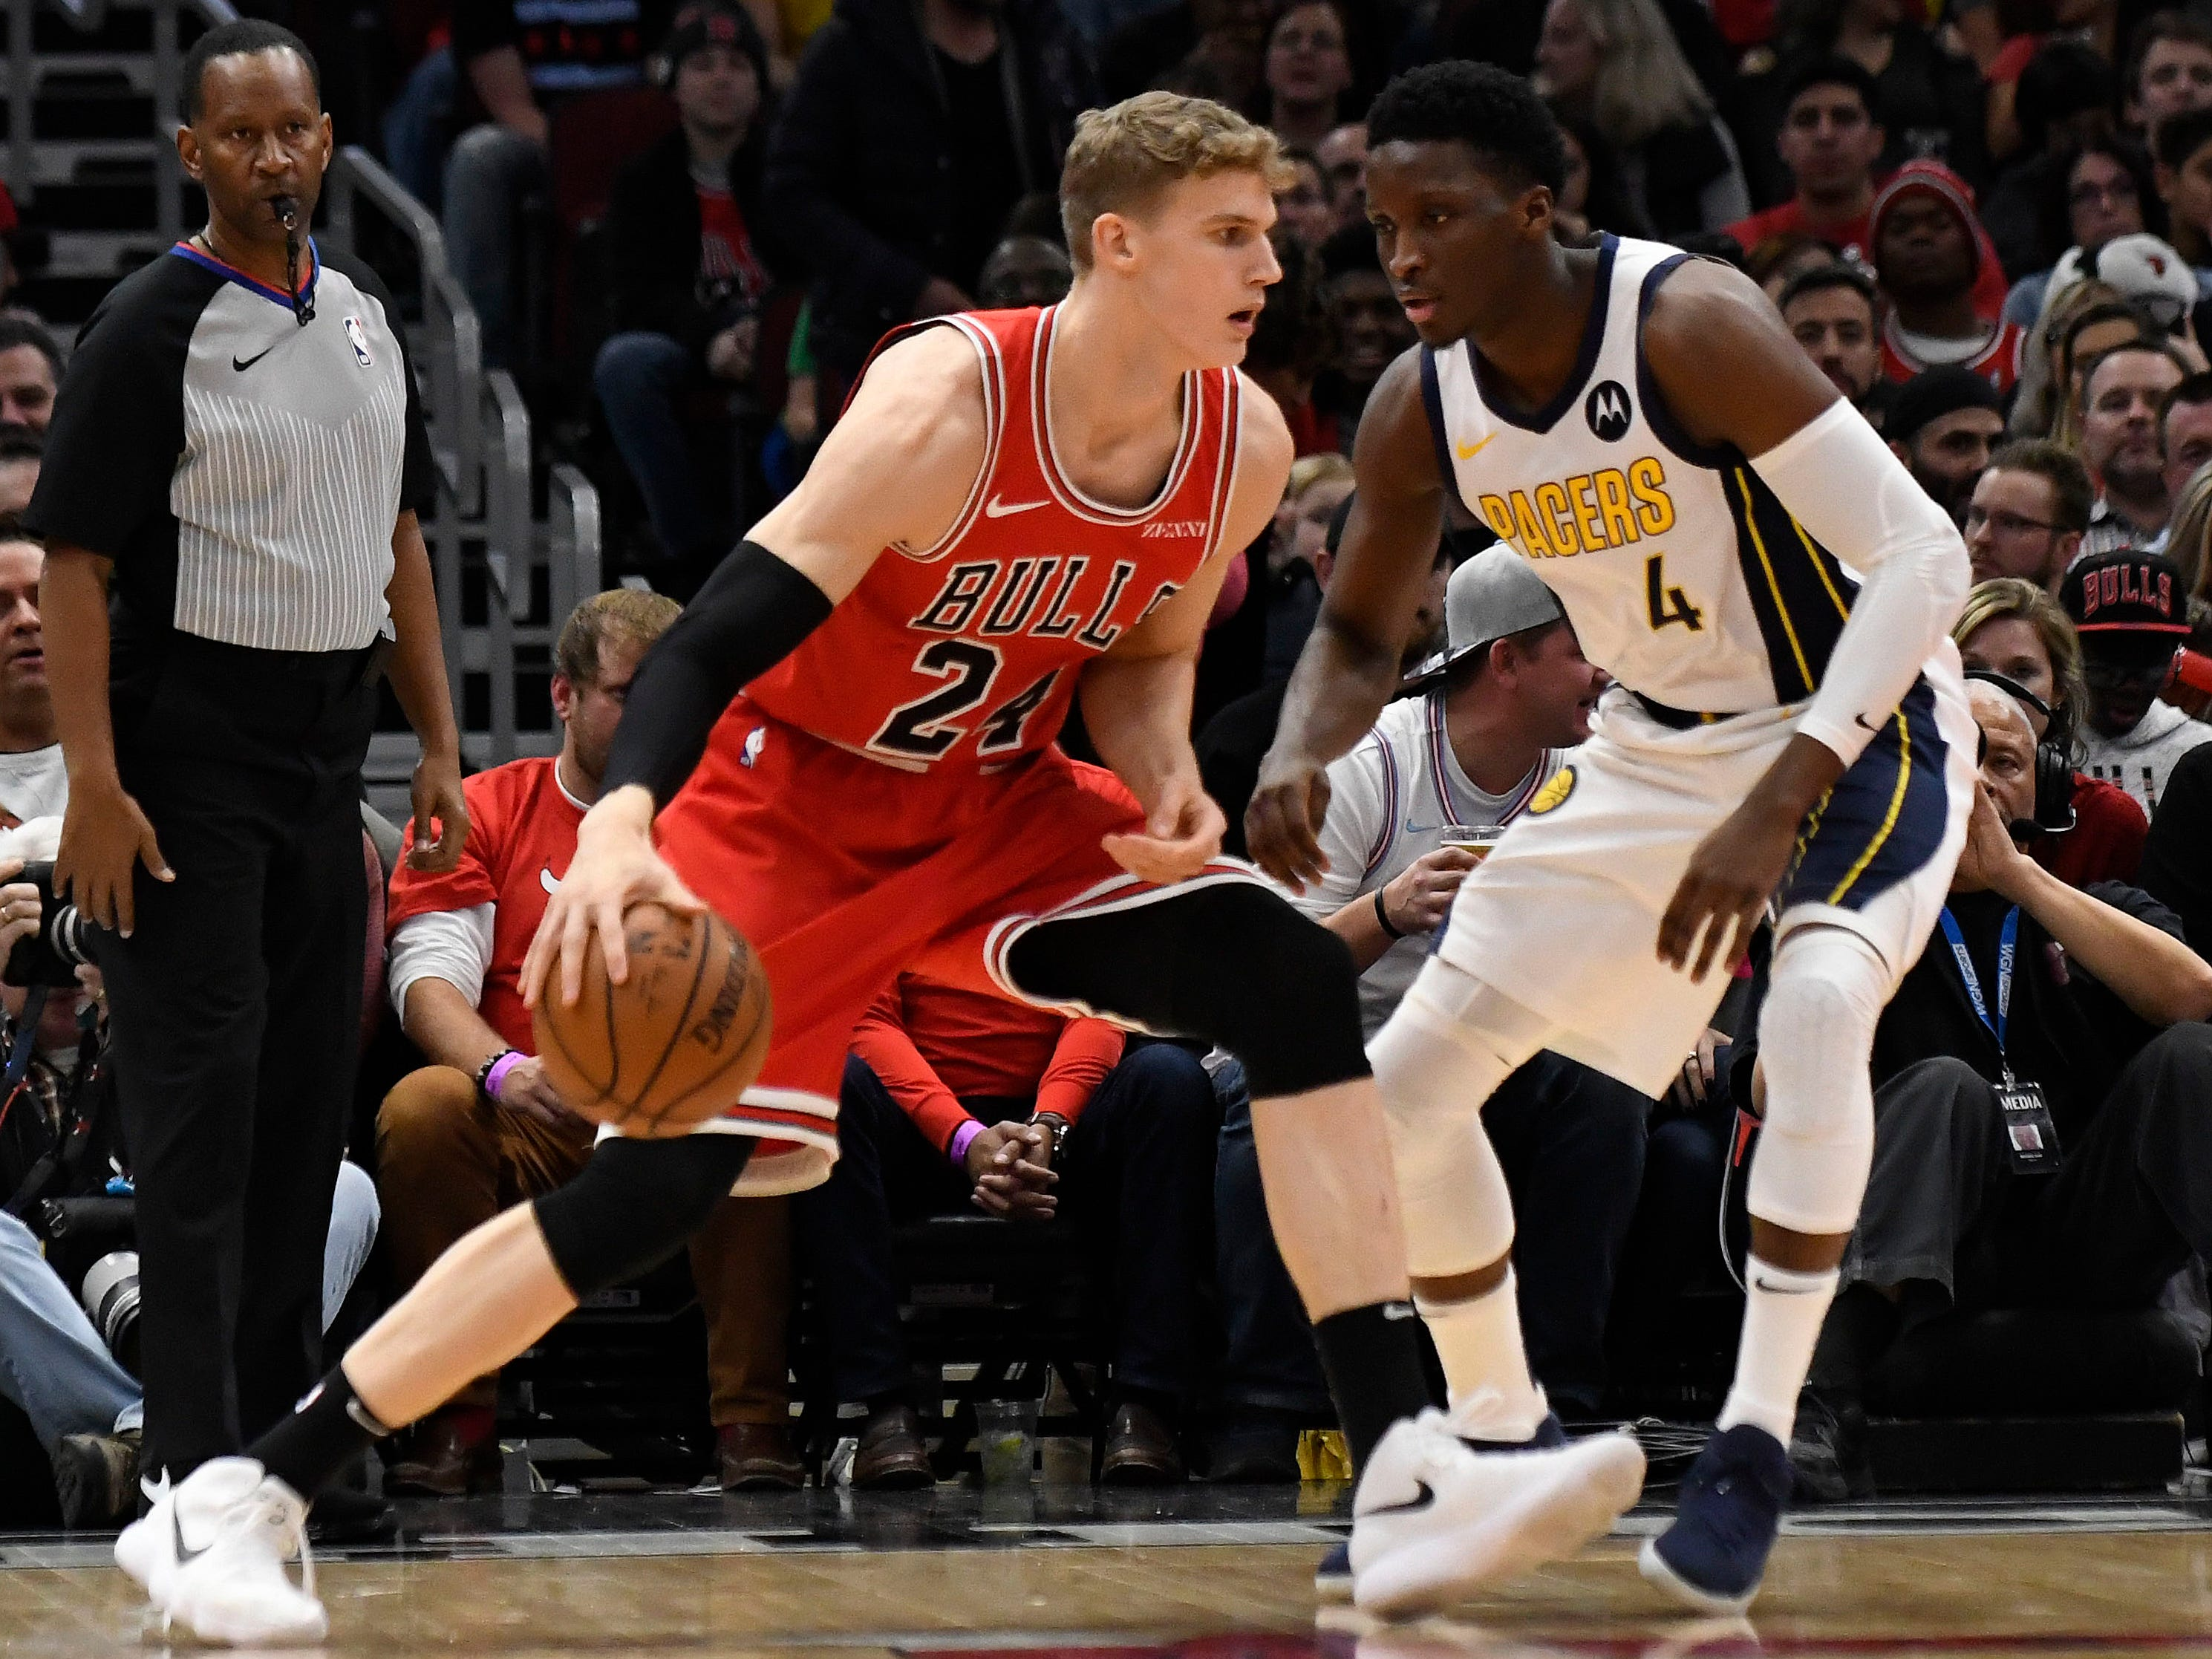 Chicago Bulls forward Lauri Markkanen (24) is defended by Indiana Pacers guard Victor Oladipo (4) during the first half at United Center.